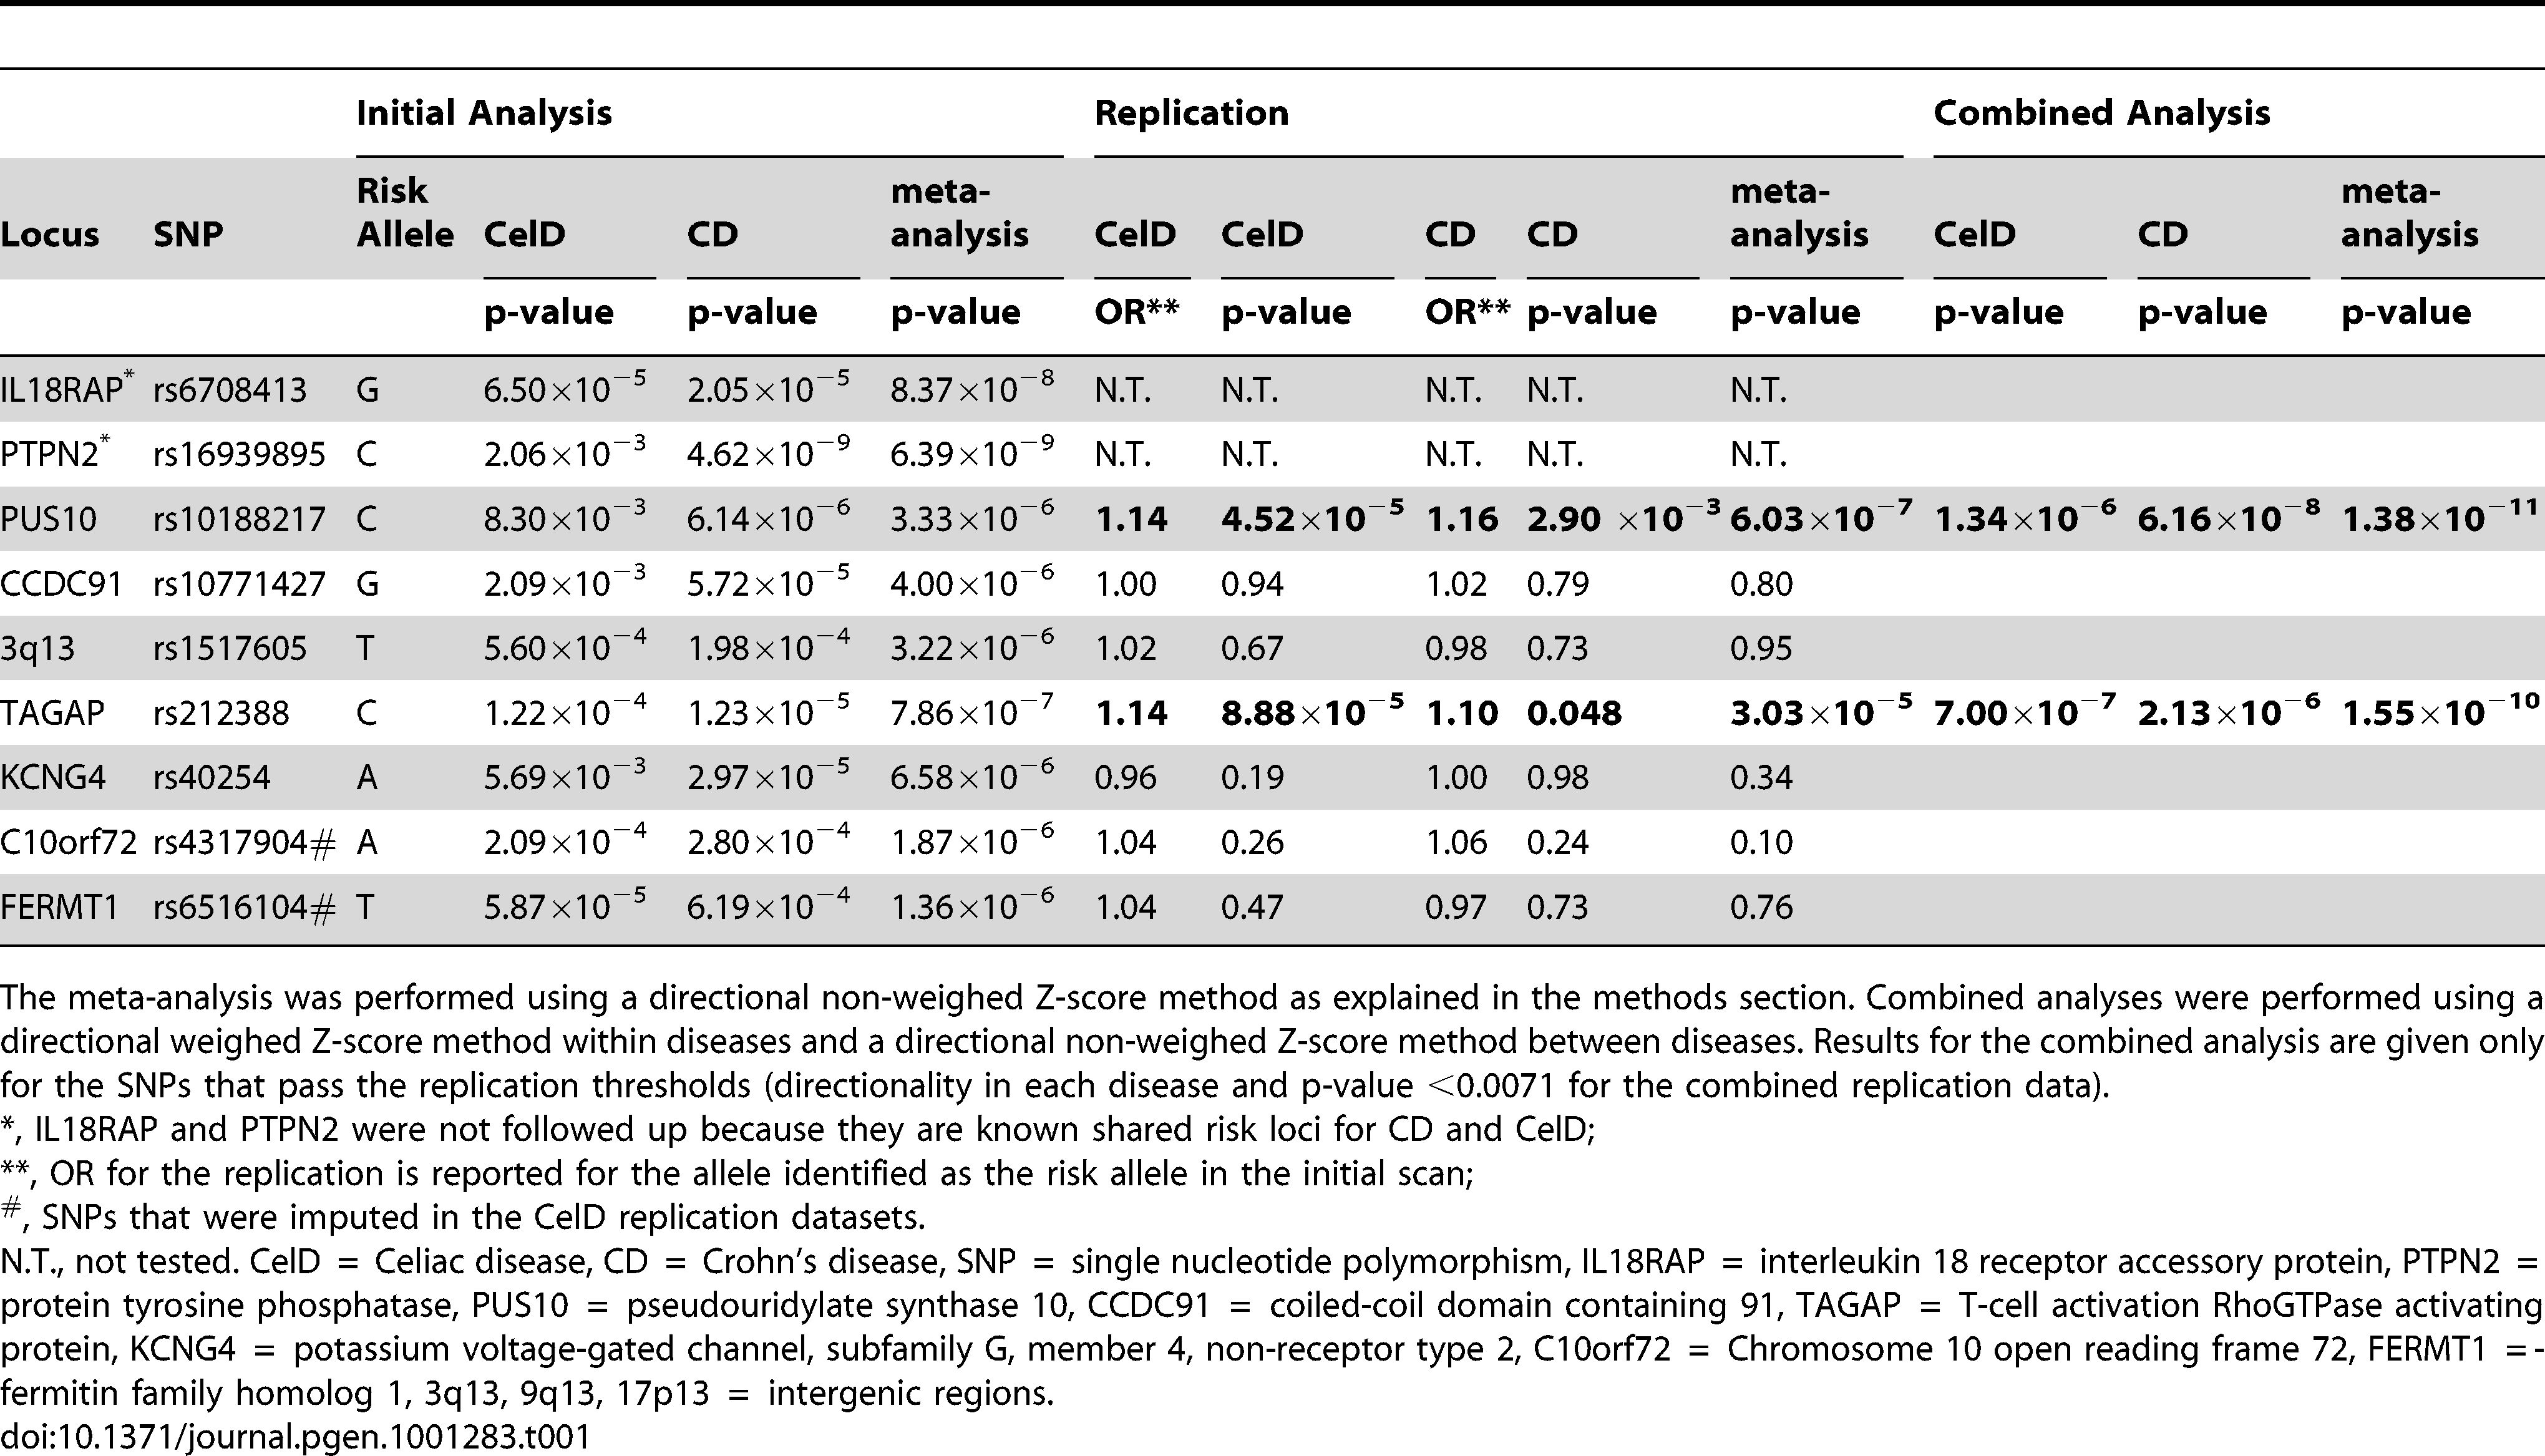 Results from the meta-analysis, replication, and combined analysis.